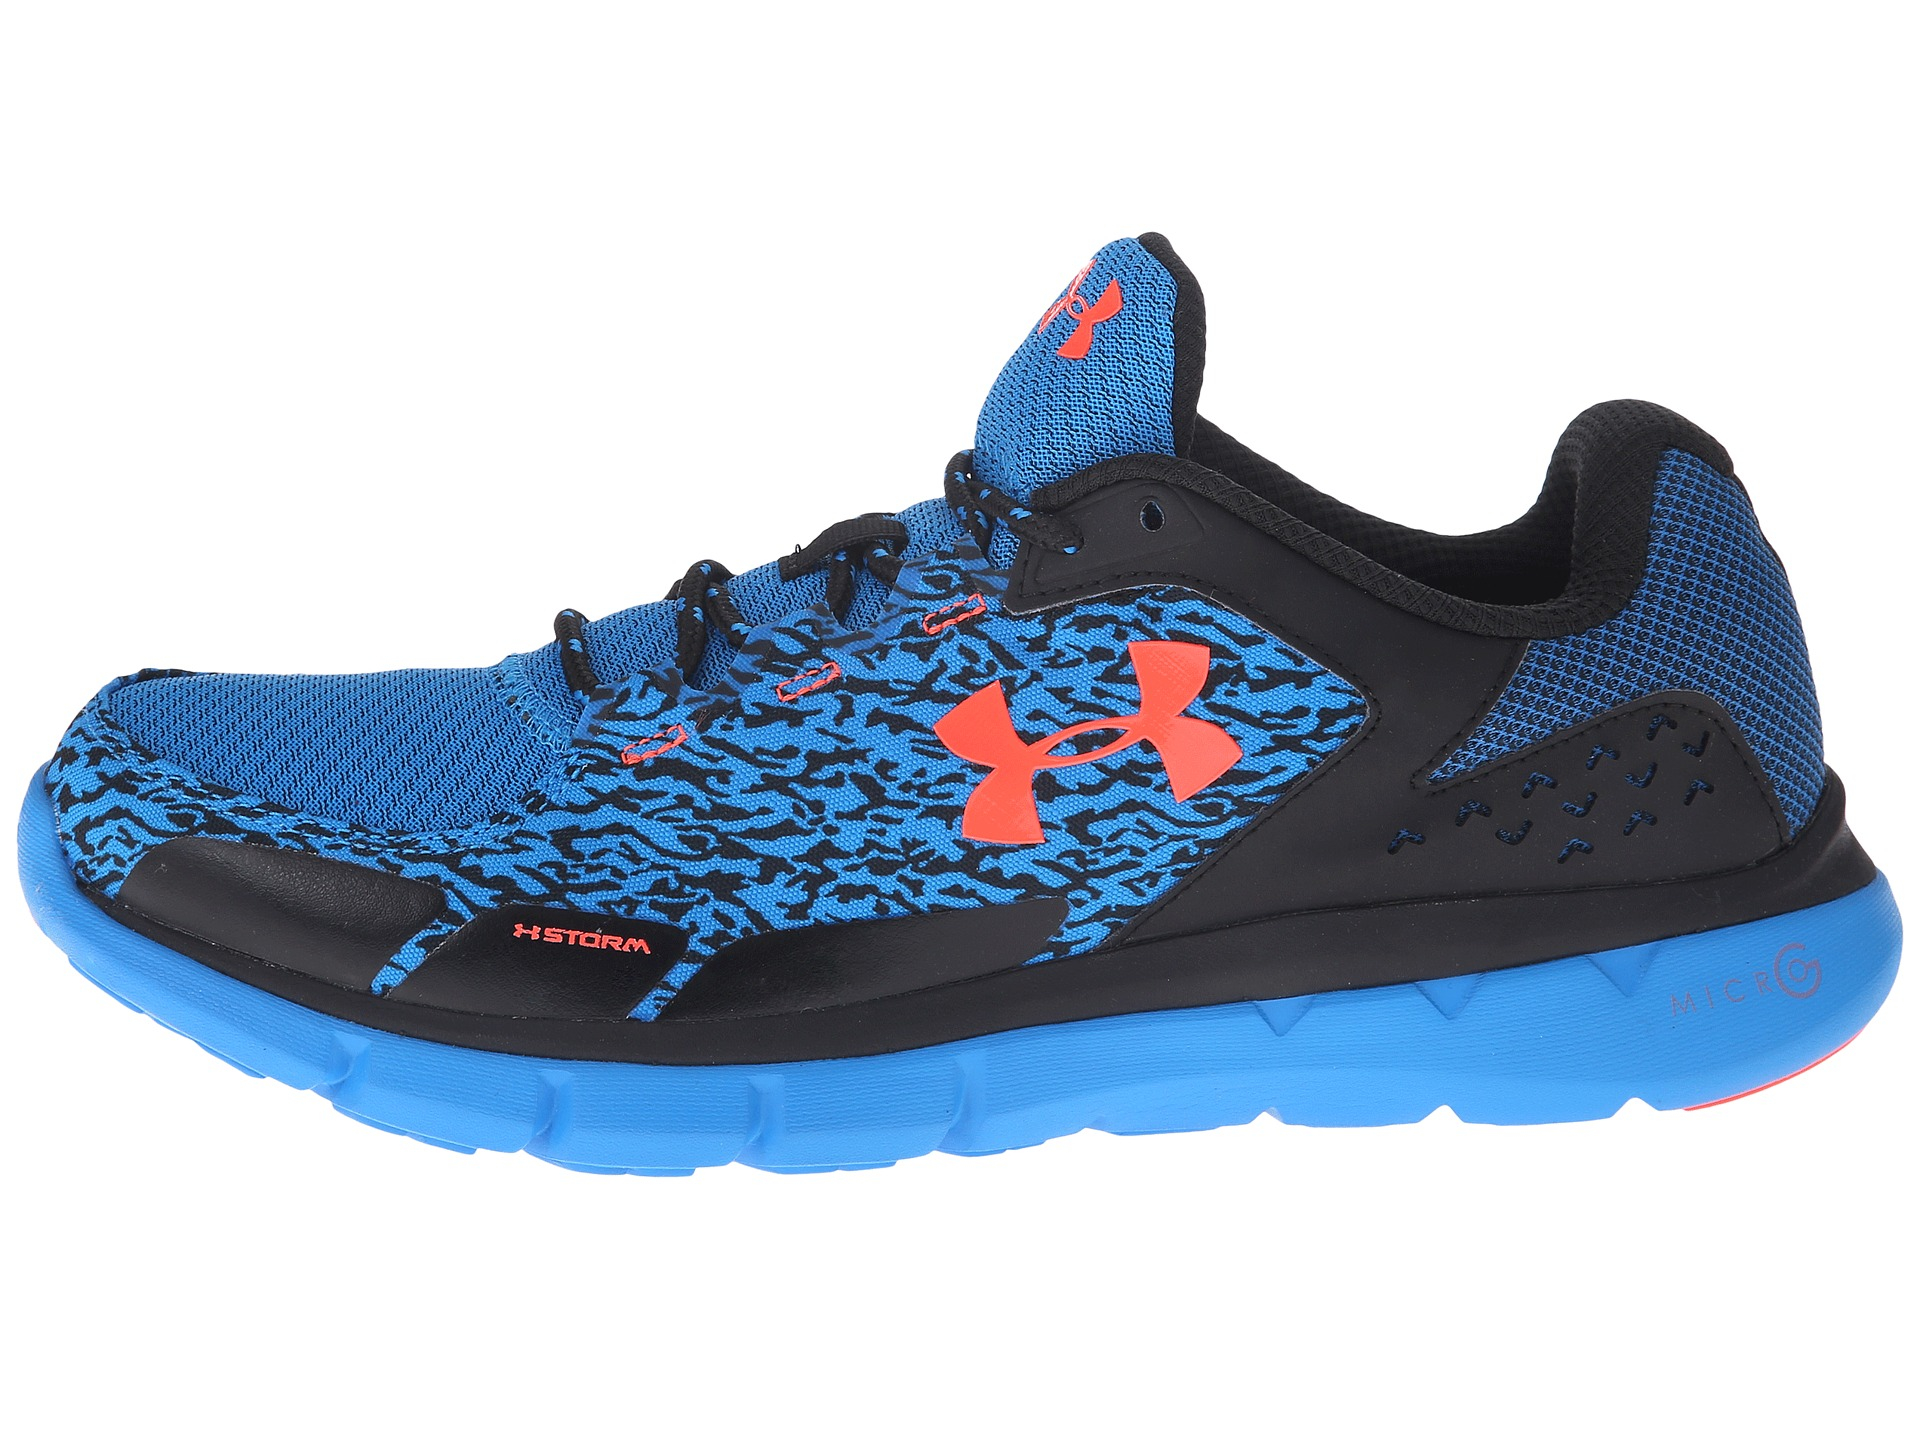 Lyst - Under Armour Ua Micro G™ Velocity Rn Storm® in Blue for Men 168a809c5decf